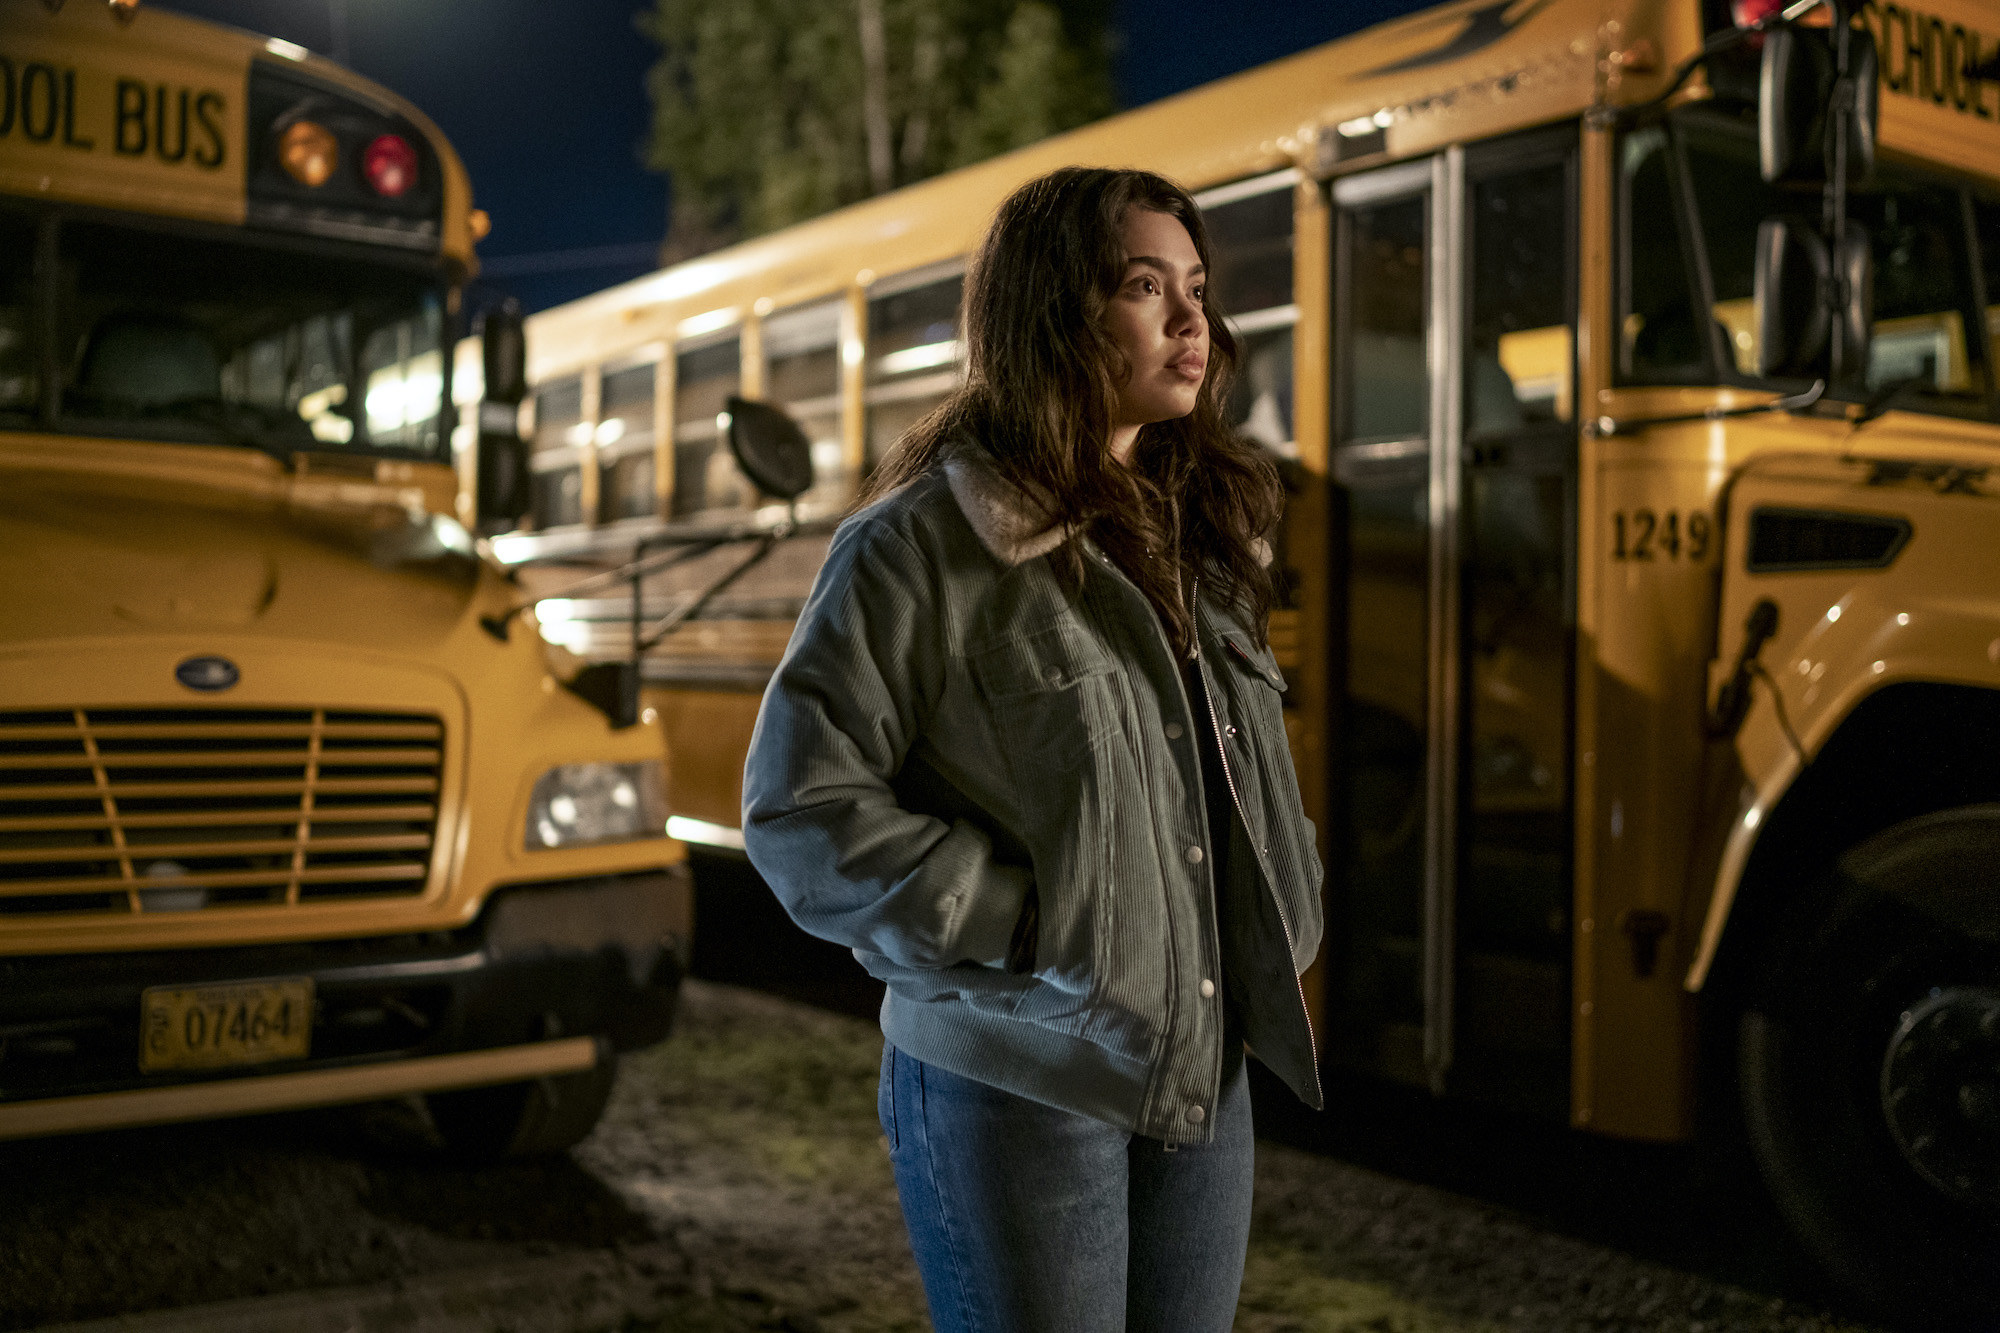 Auli'i Cravalho stands in front of two school buses at night in All Together Now